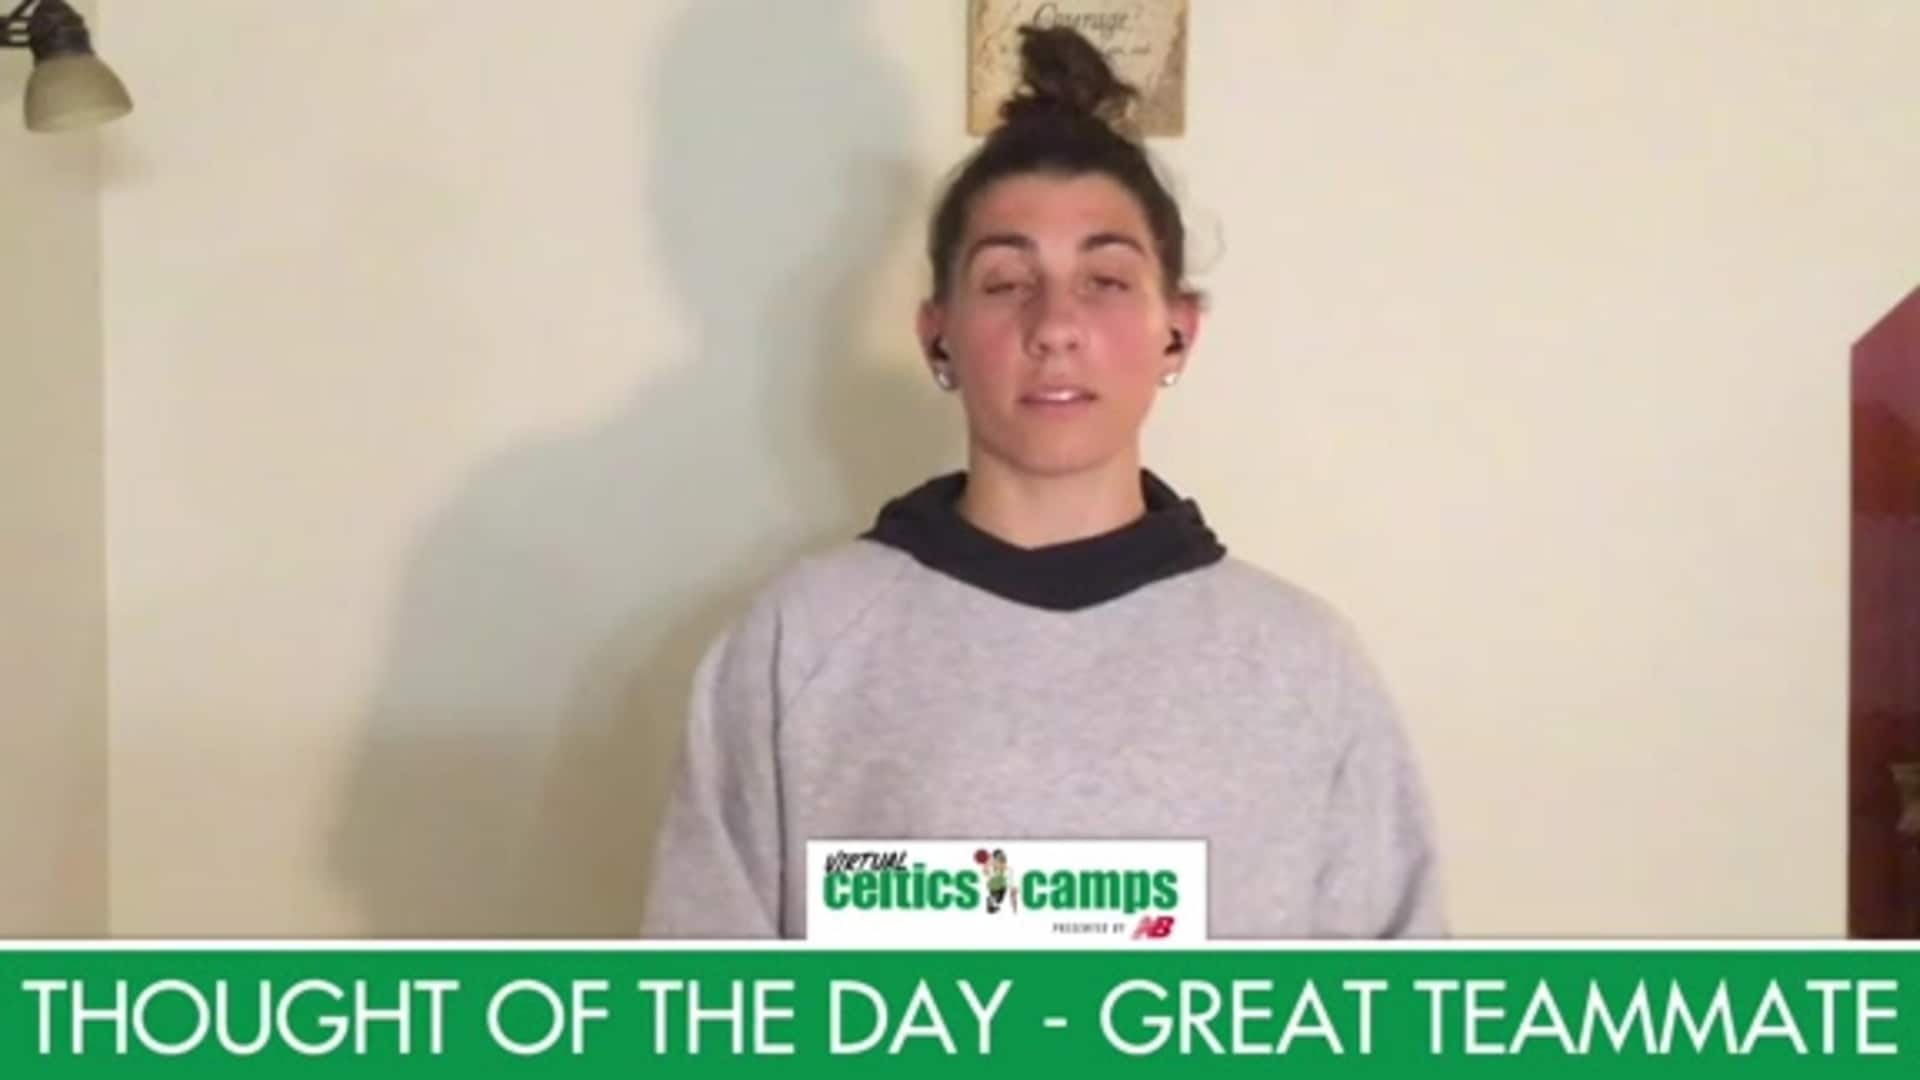 Virtual Celtics Camps - Thought of the Day Great Teammate